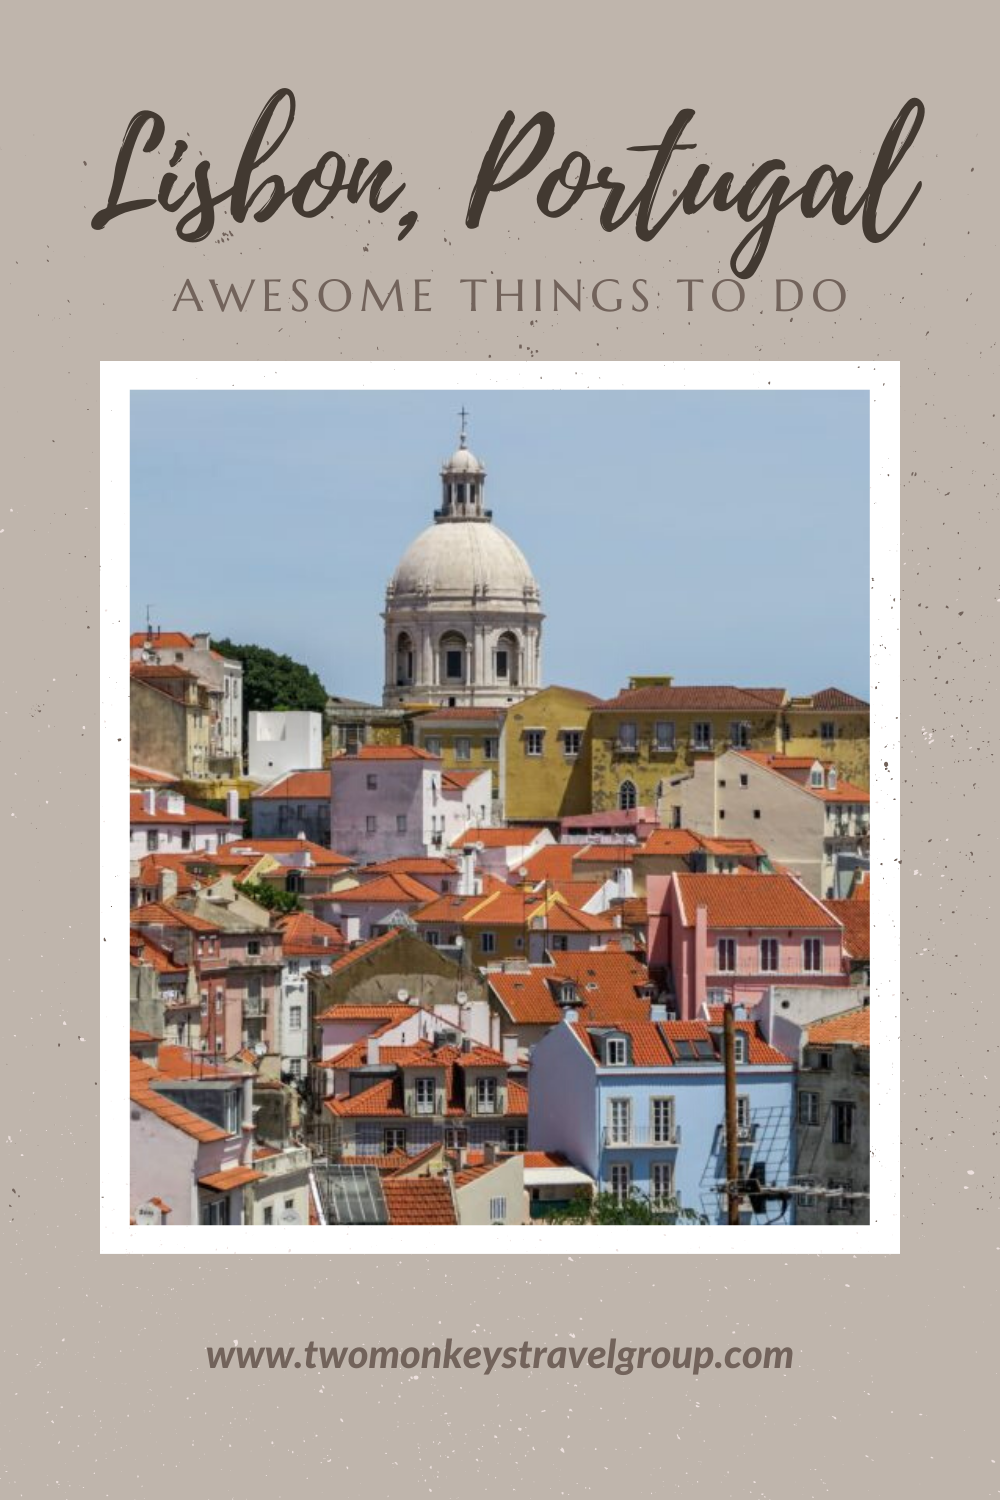 7 Awesome Things to do in Lisbon, Portugal [With Suggested Tours]